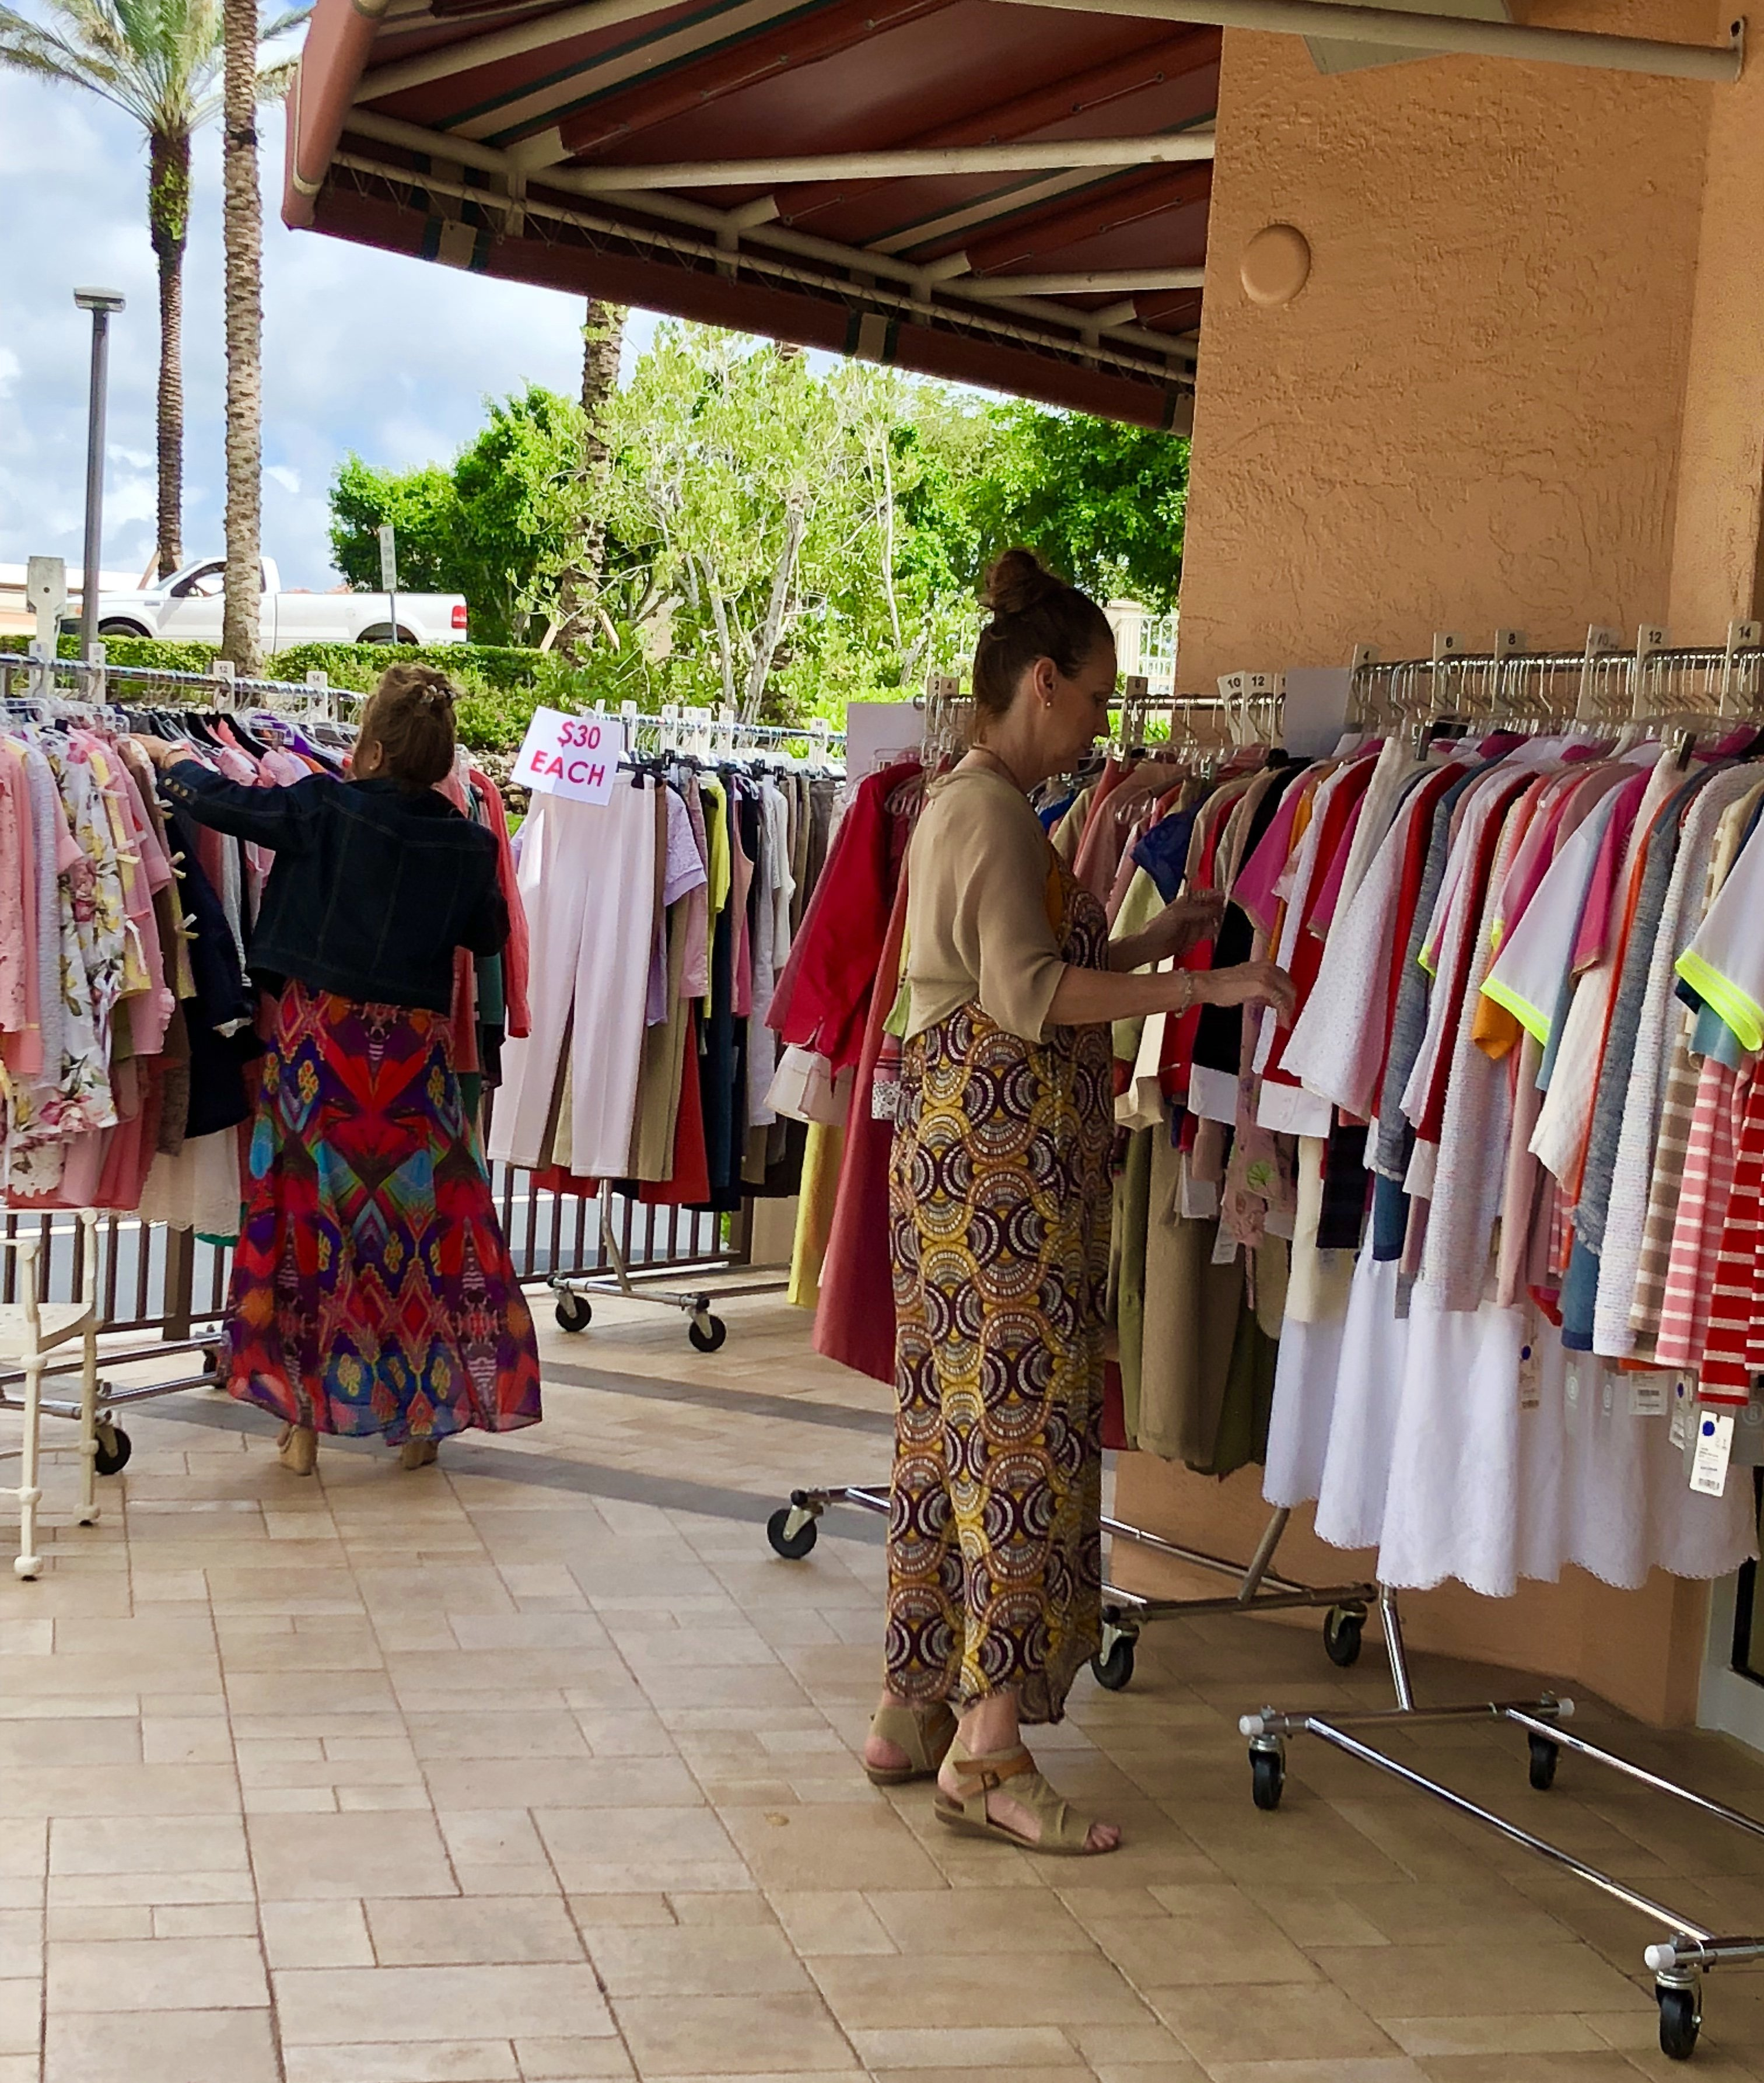 Labor Day Sidewalk Sale, The Village Shops on Venetian Bay, Waterfront Shopping & Dining Destination